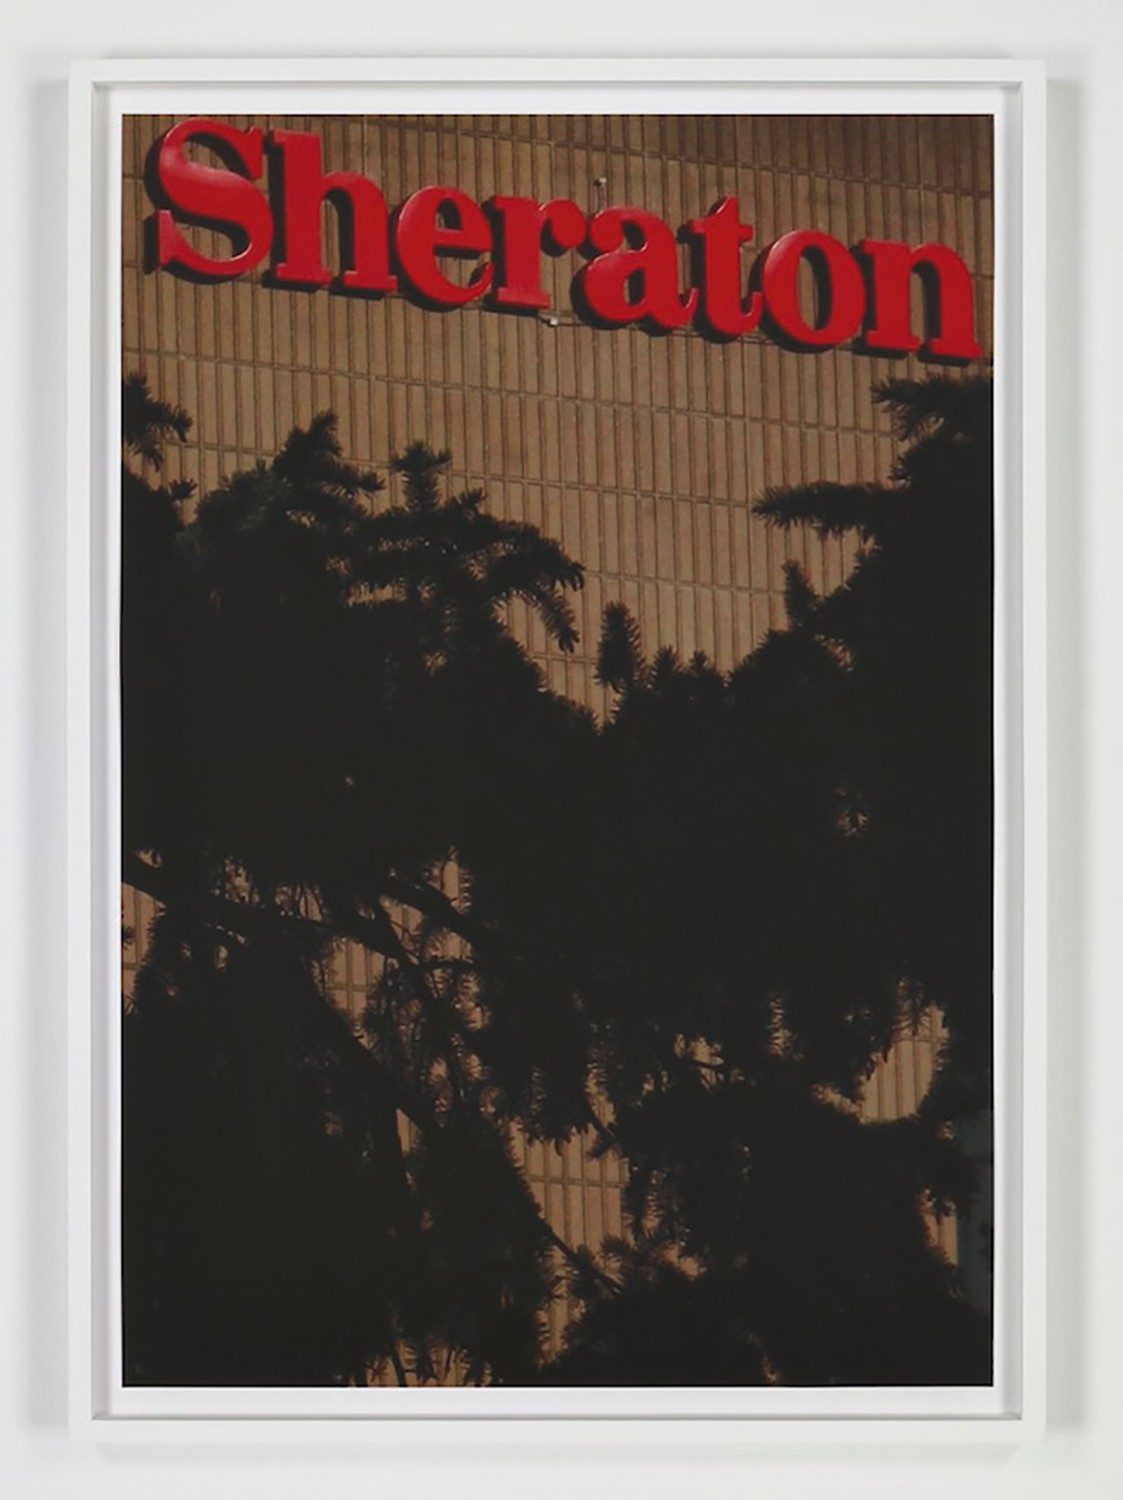 National Charter (Sheraton)